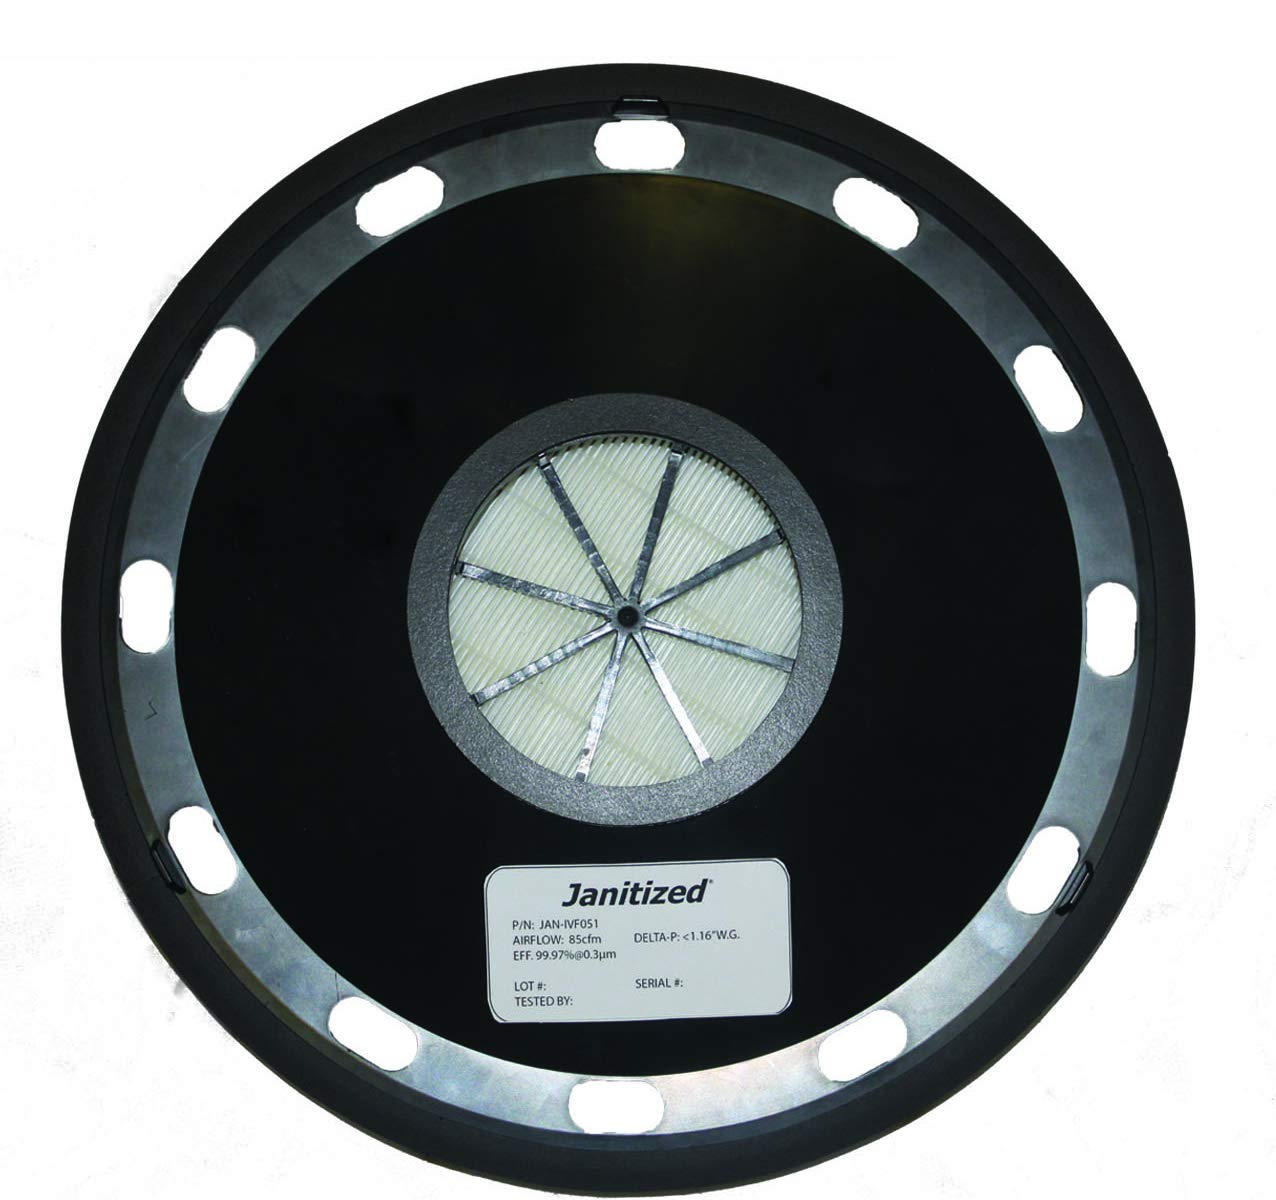 Janitized JAN-IVF051 Pullman Holt 390ASB and Euro 930 Premium Replacement Commercial HEPA Filter by Janitized